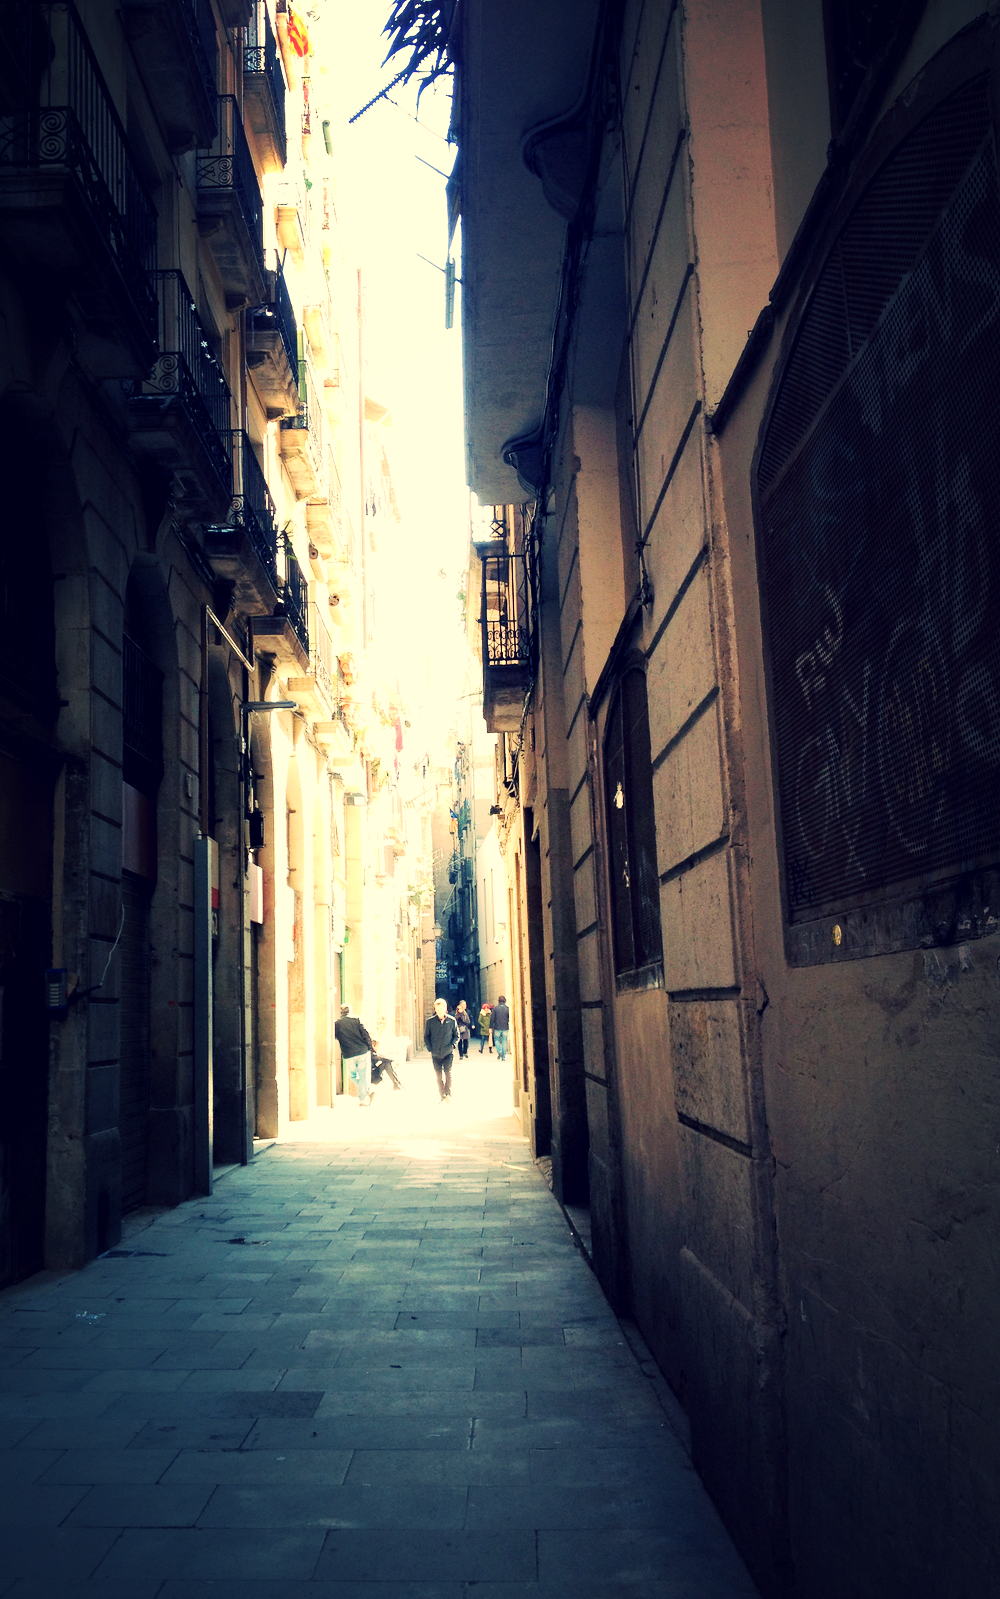 Alley way I, Barcelona